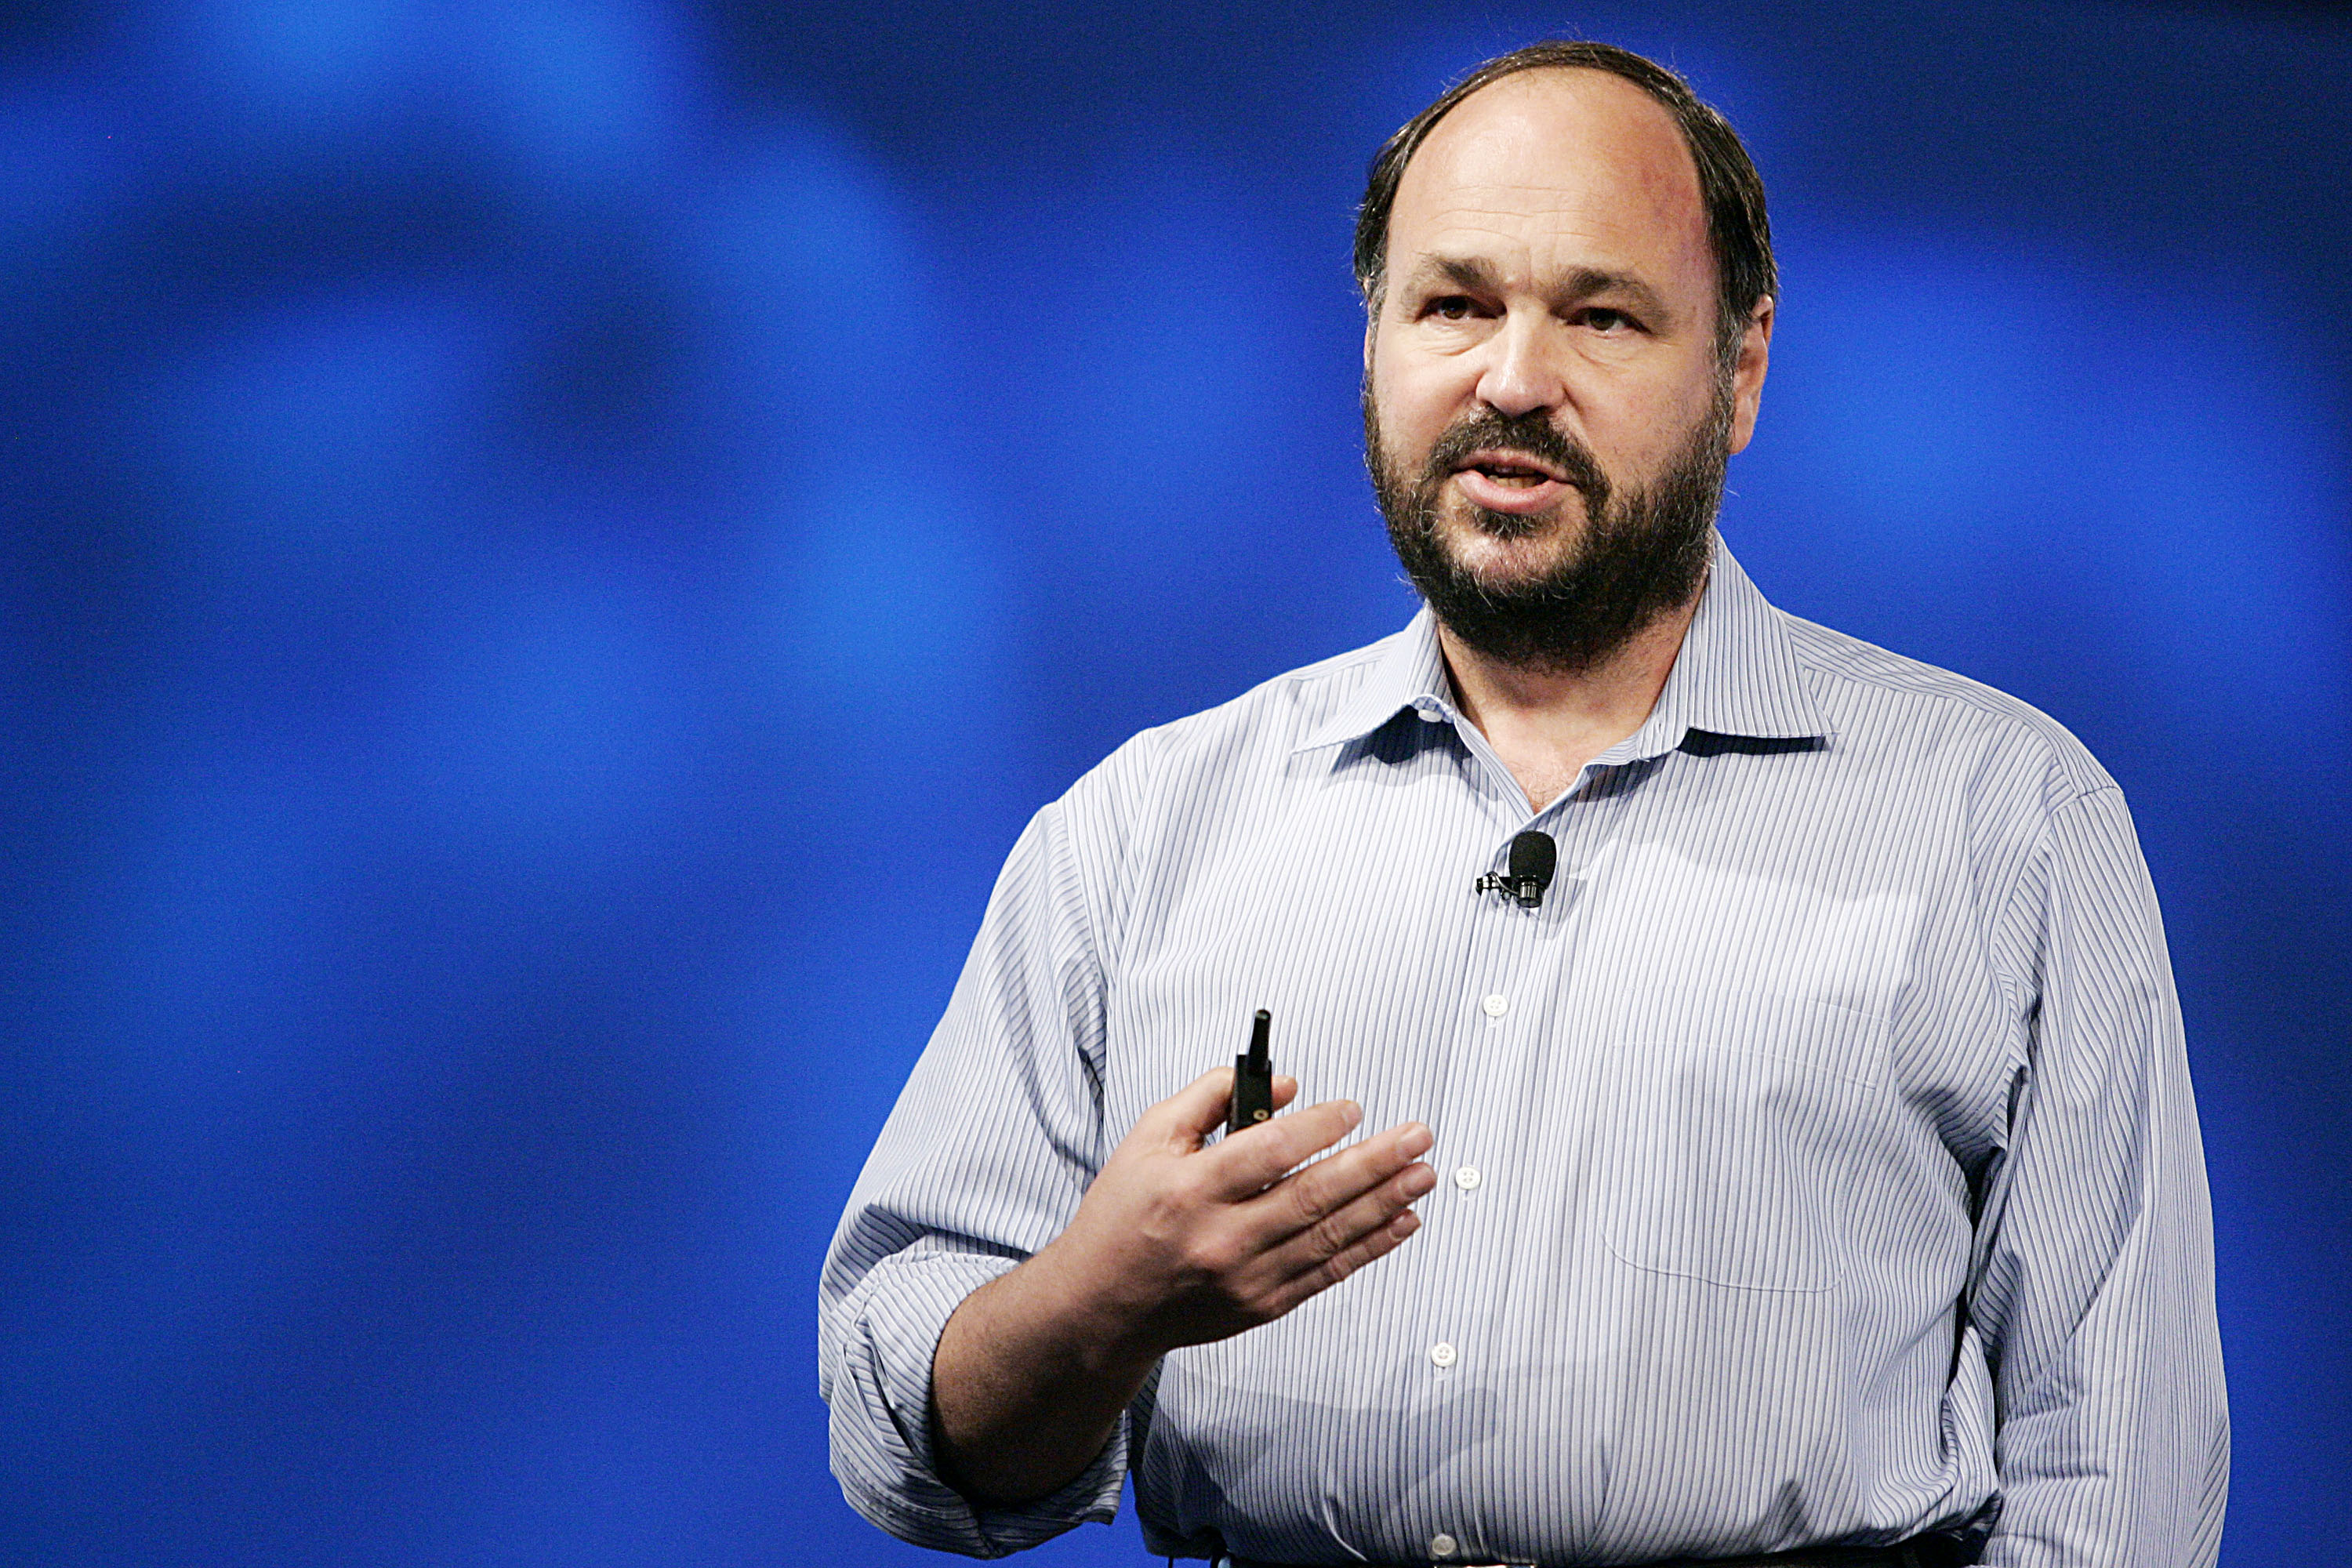 Paul Maritz, chief executive officer of VMware, at the EMC World conference in Las Vegas in 2011.